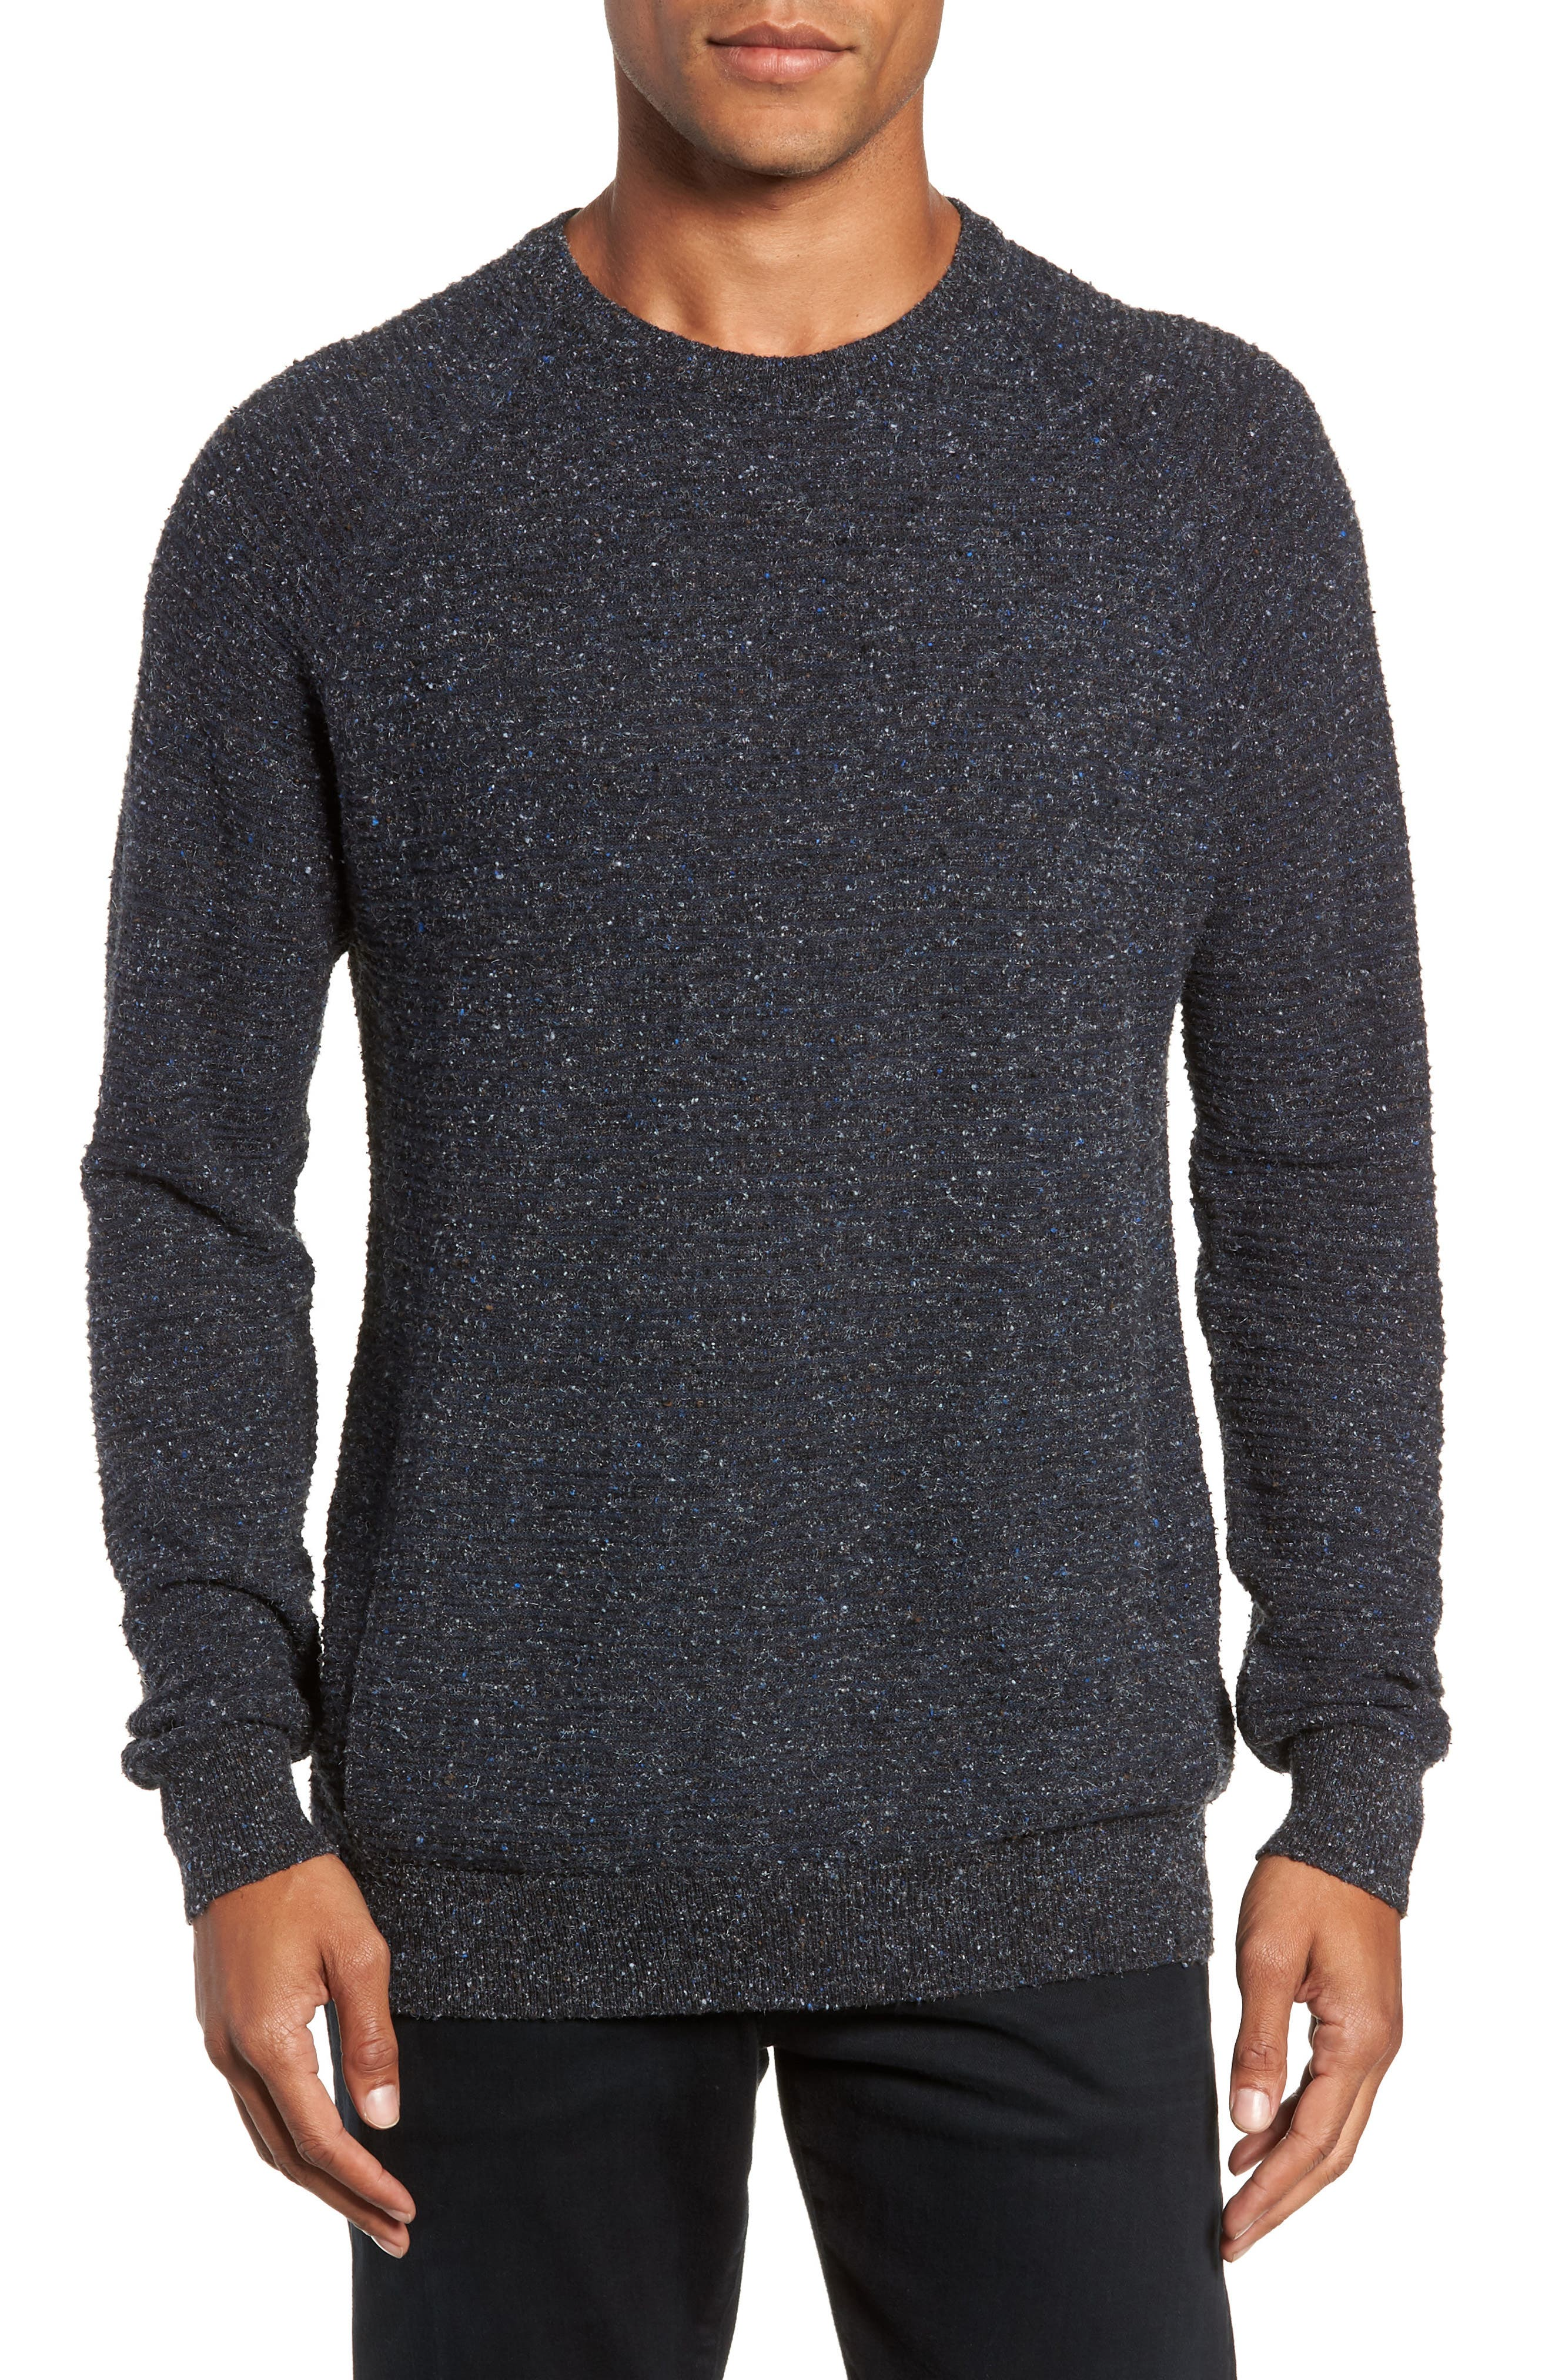 Speckle Stripe Sweater,                         Main,                         color, NAVY/ CHARCOAL